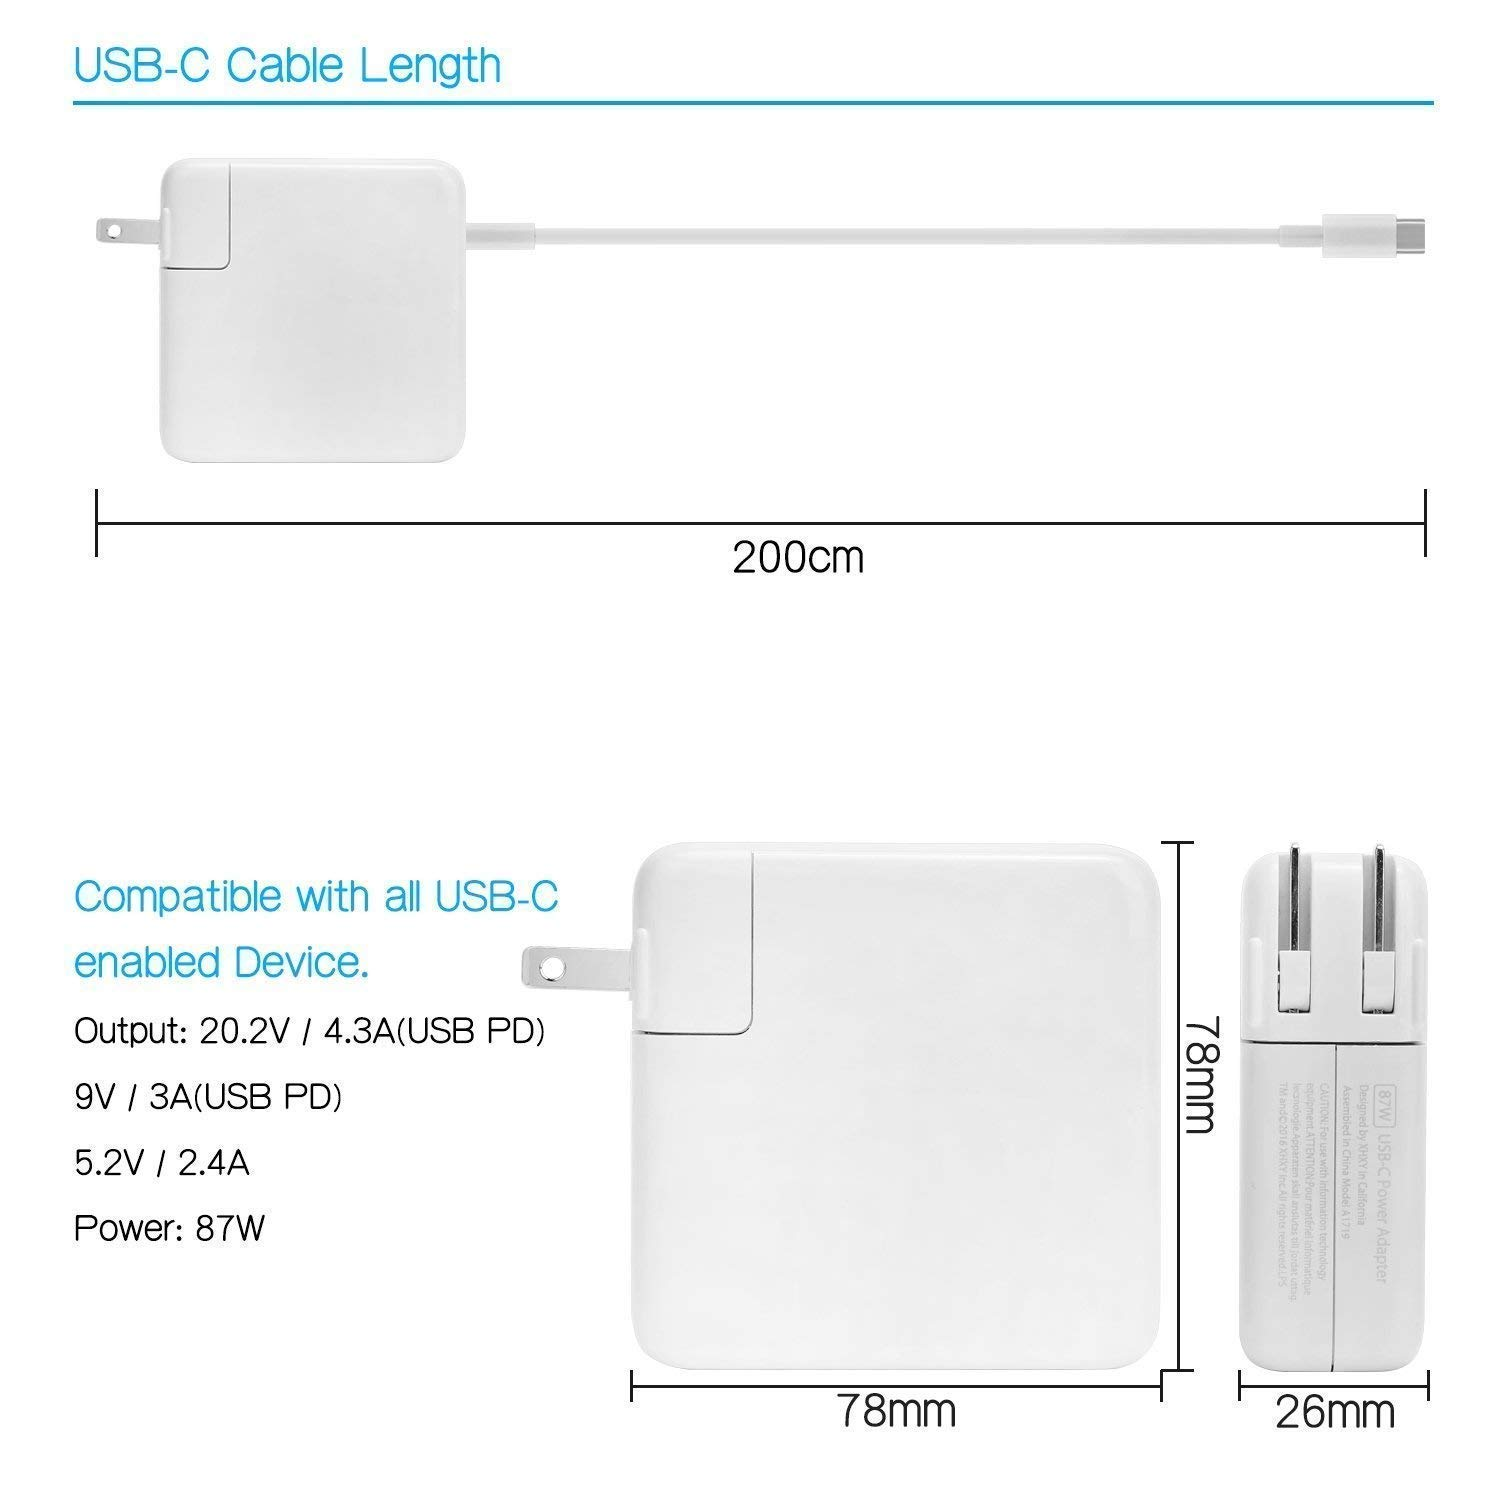 87W USB-C Power Adapter, Replacement USB-C AC supply charger Compatible with Mac Book Pro 15 inch 2016 13 inch 2017 2018 12 inch With USB-C to USB-C charge cable by RAYI (Image #3)